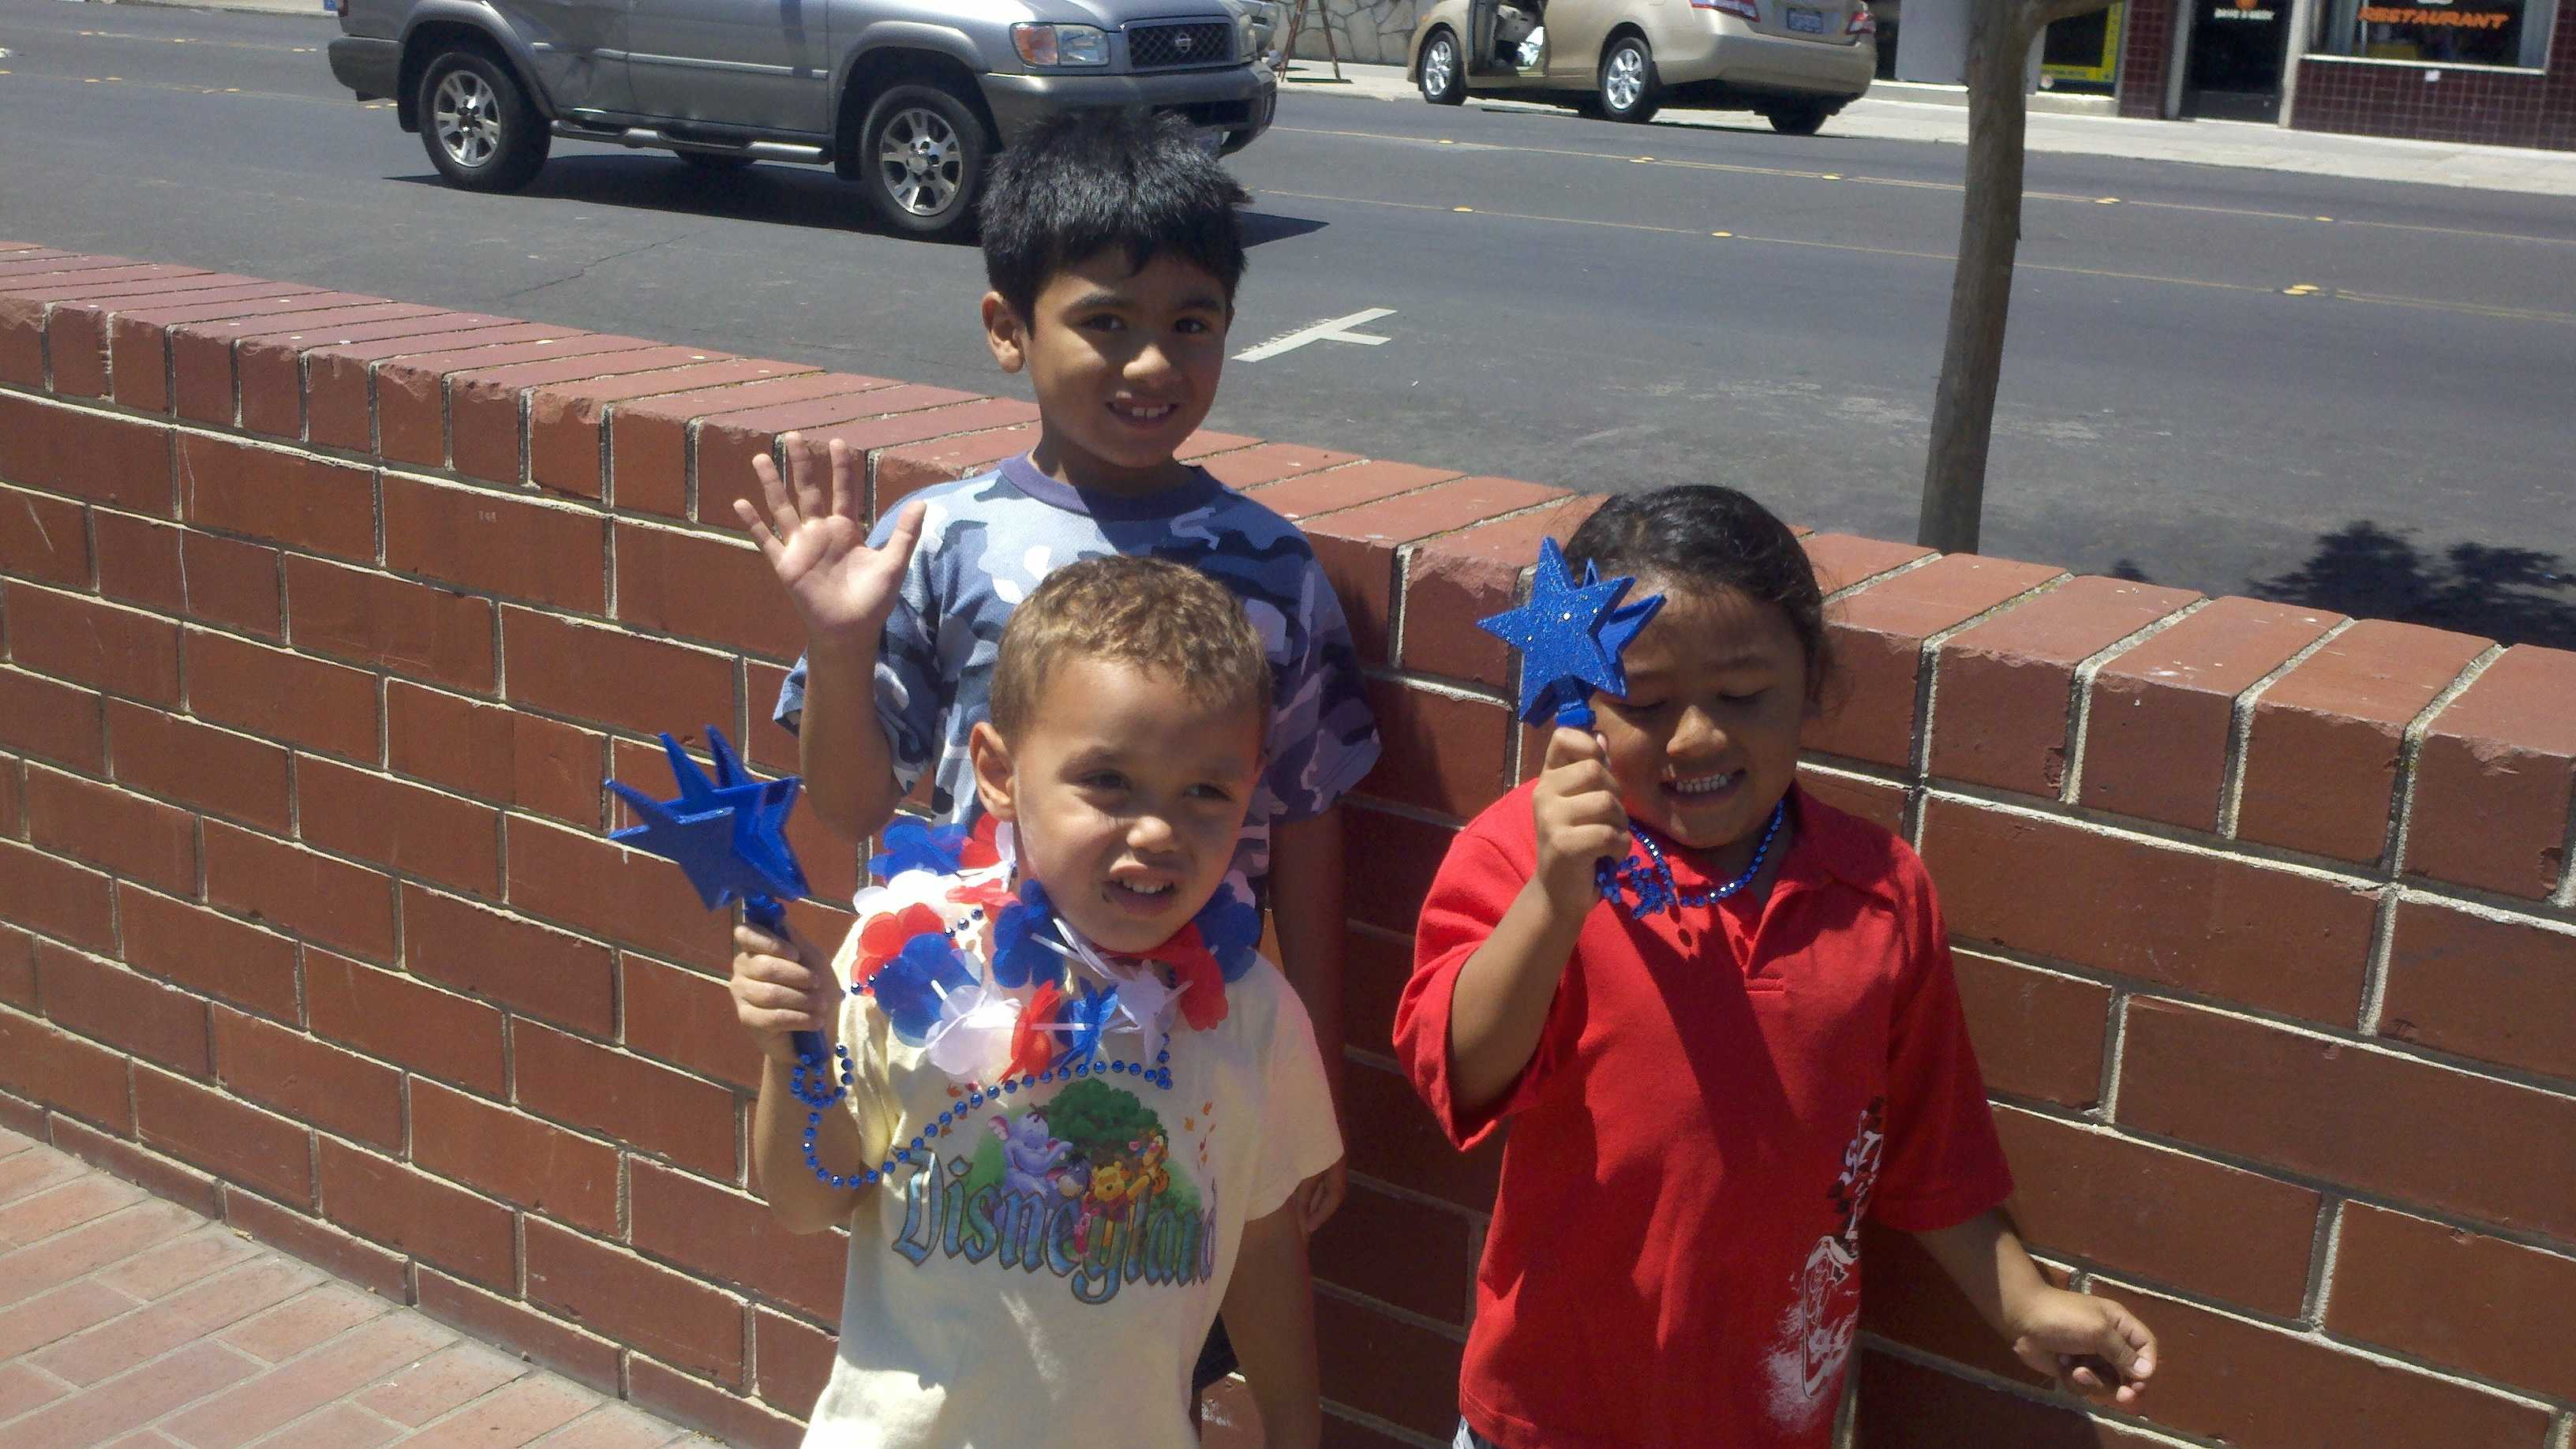 Children celebrate a traditional July 4 parade in Stockton.